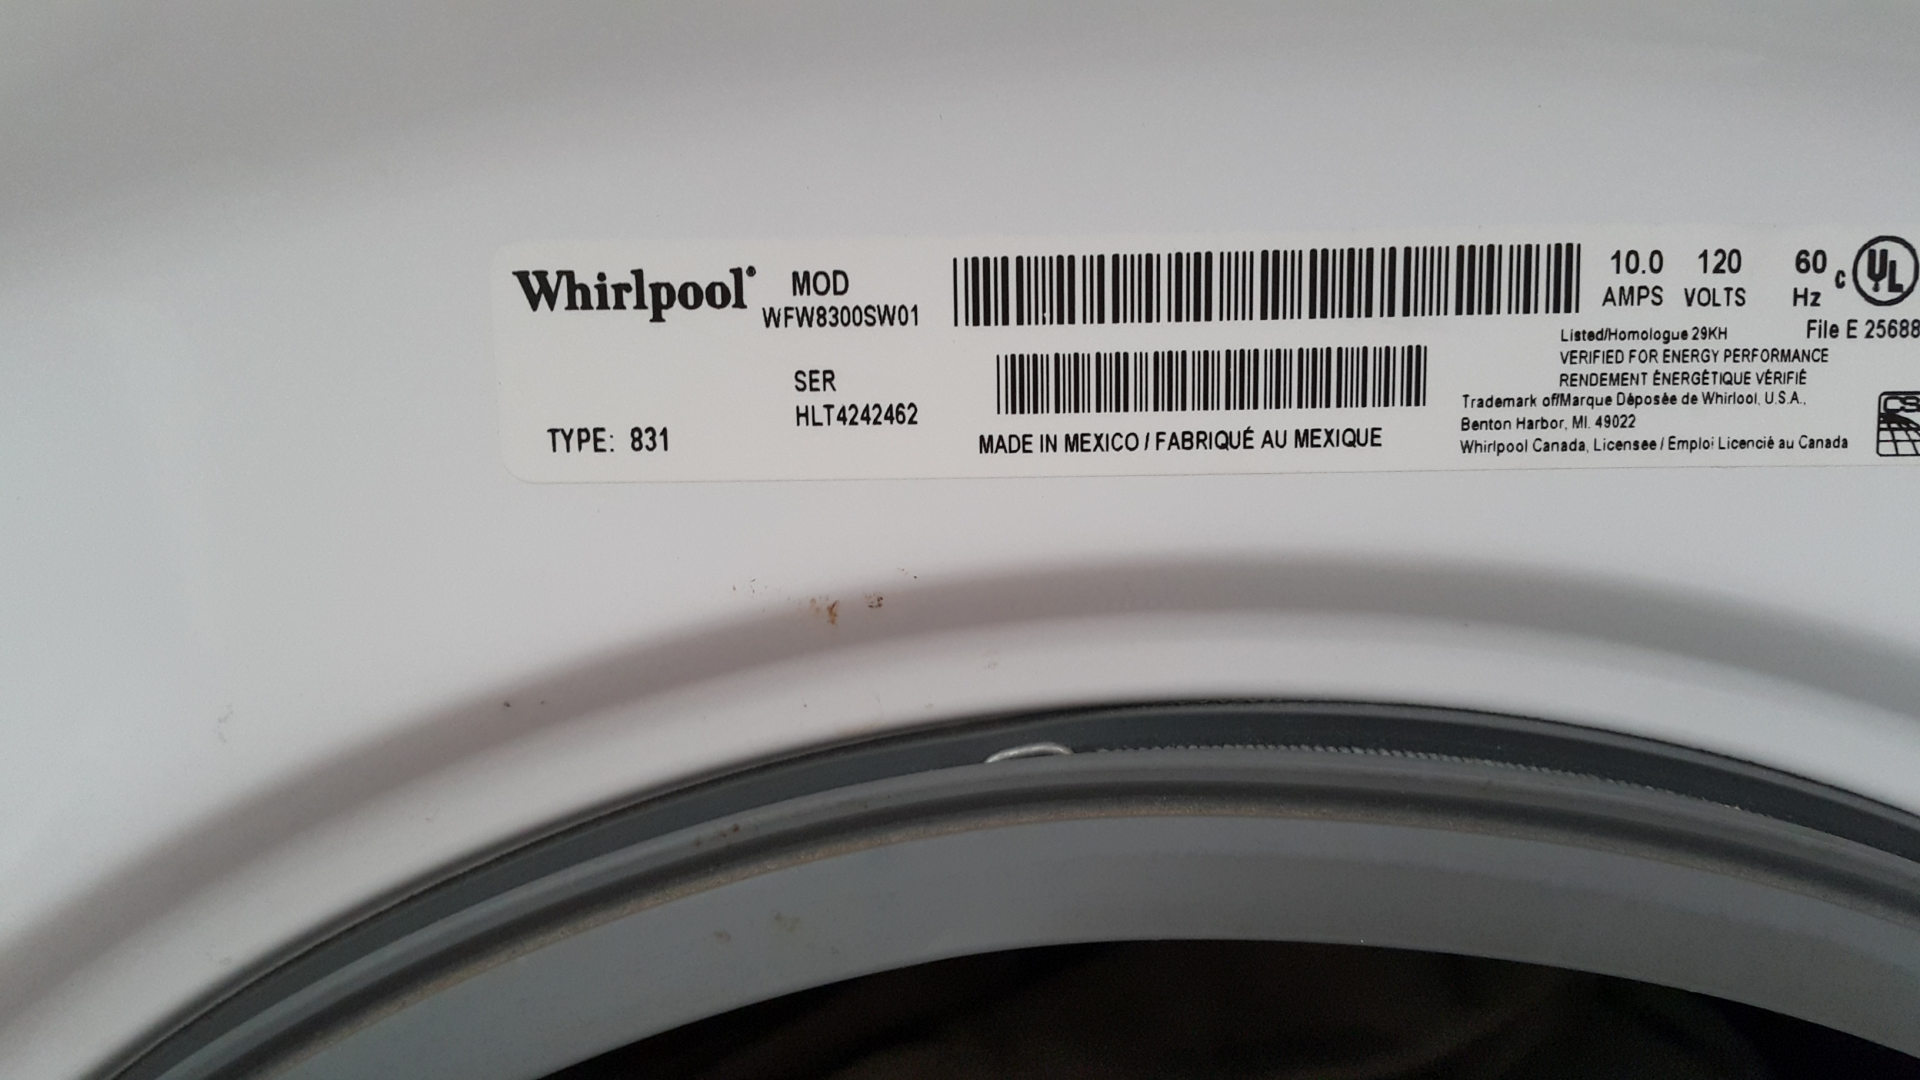 3400 washer maytag neptune mah3000aww leaking water from the front gasket repair in saratoga ca.1920x1200 washer maytag neptune mah3000aww leaking water from the front mah3000aww wiring diagram at gsmportal.co